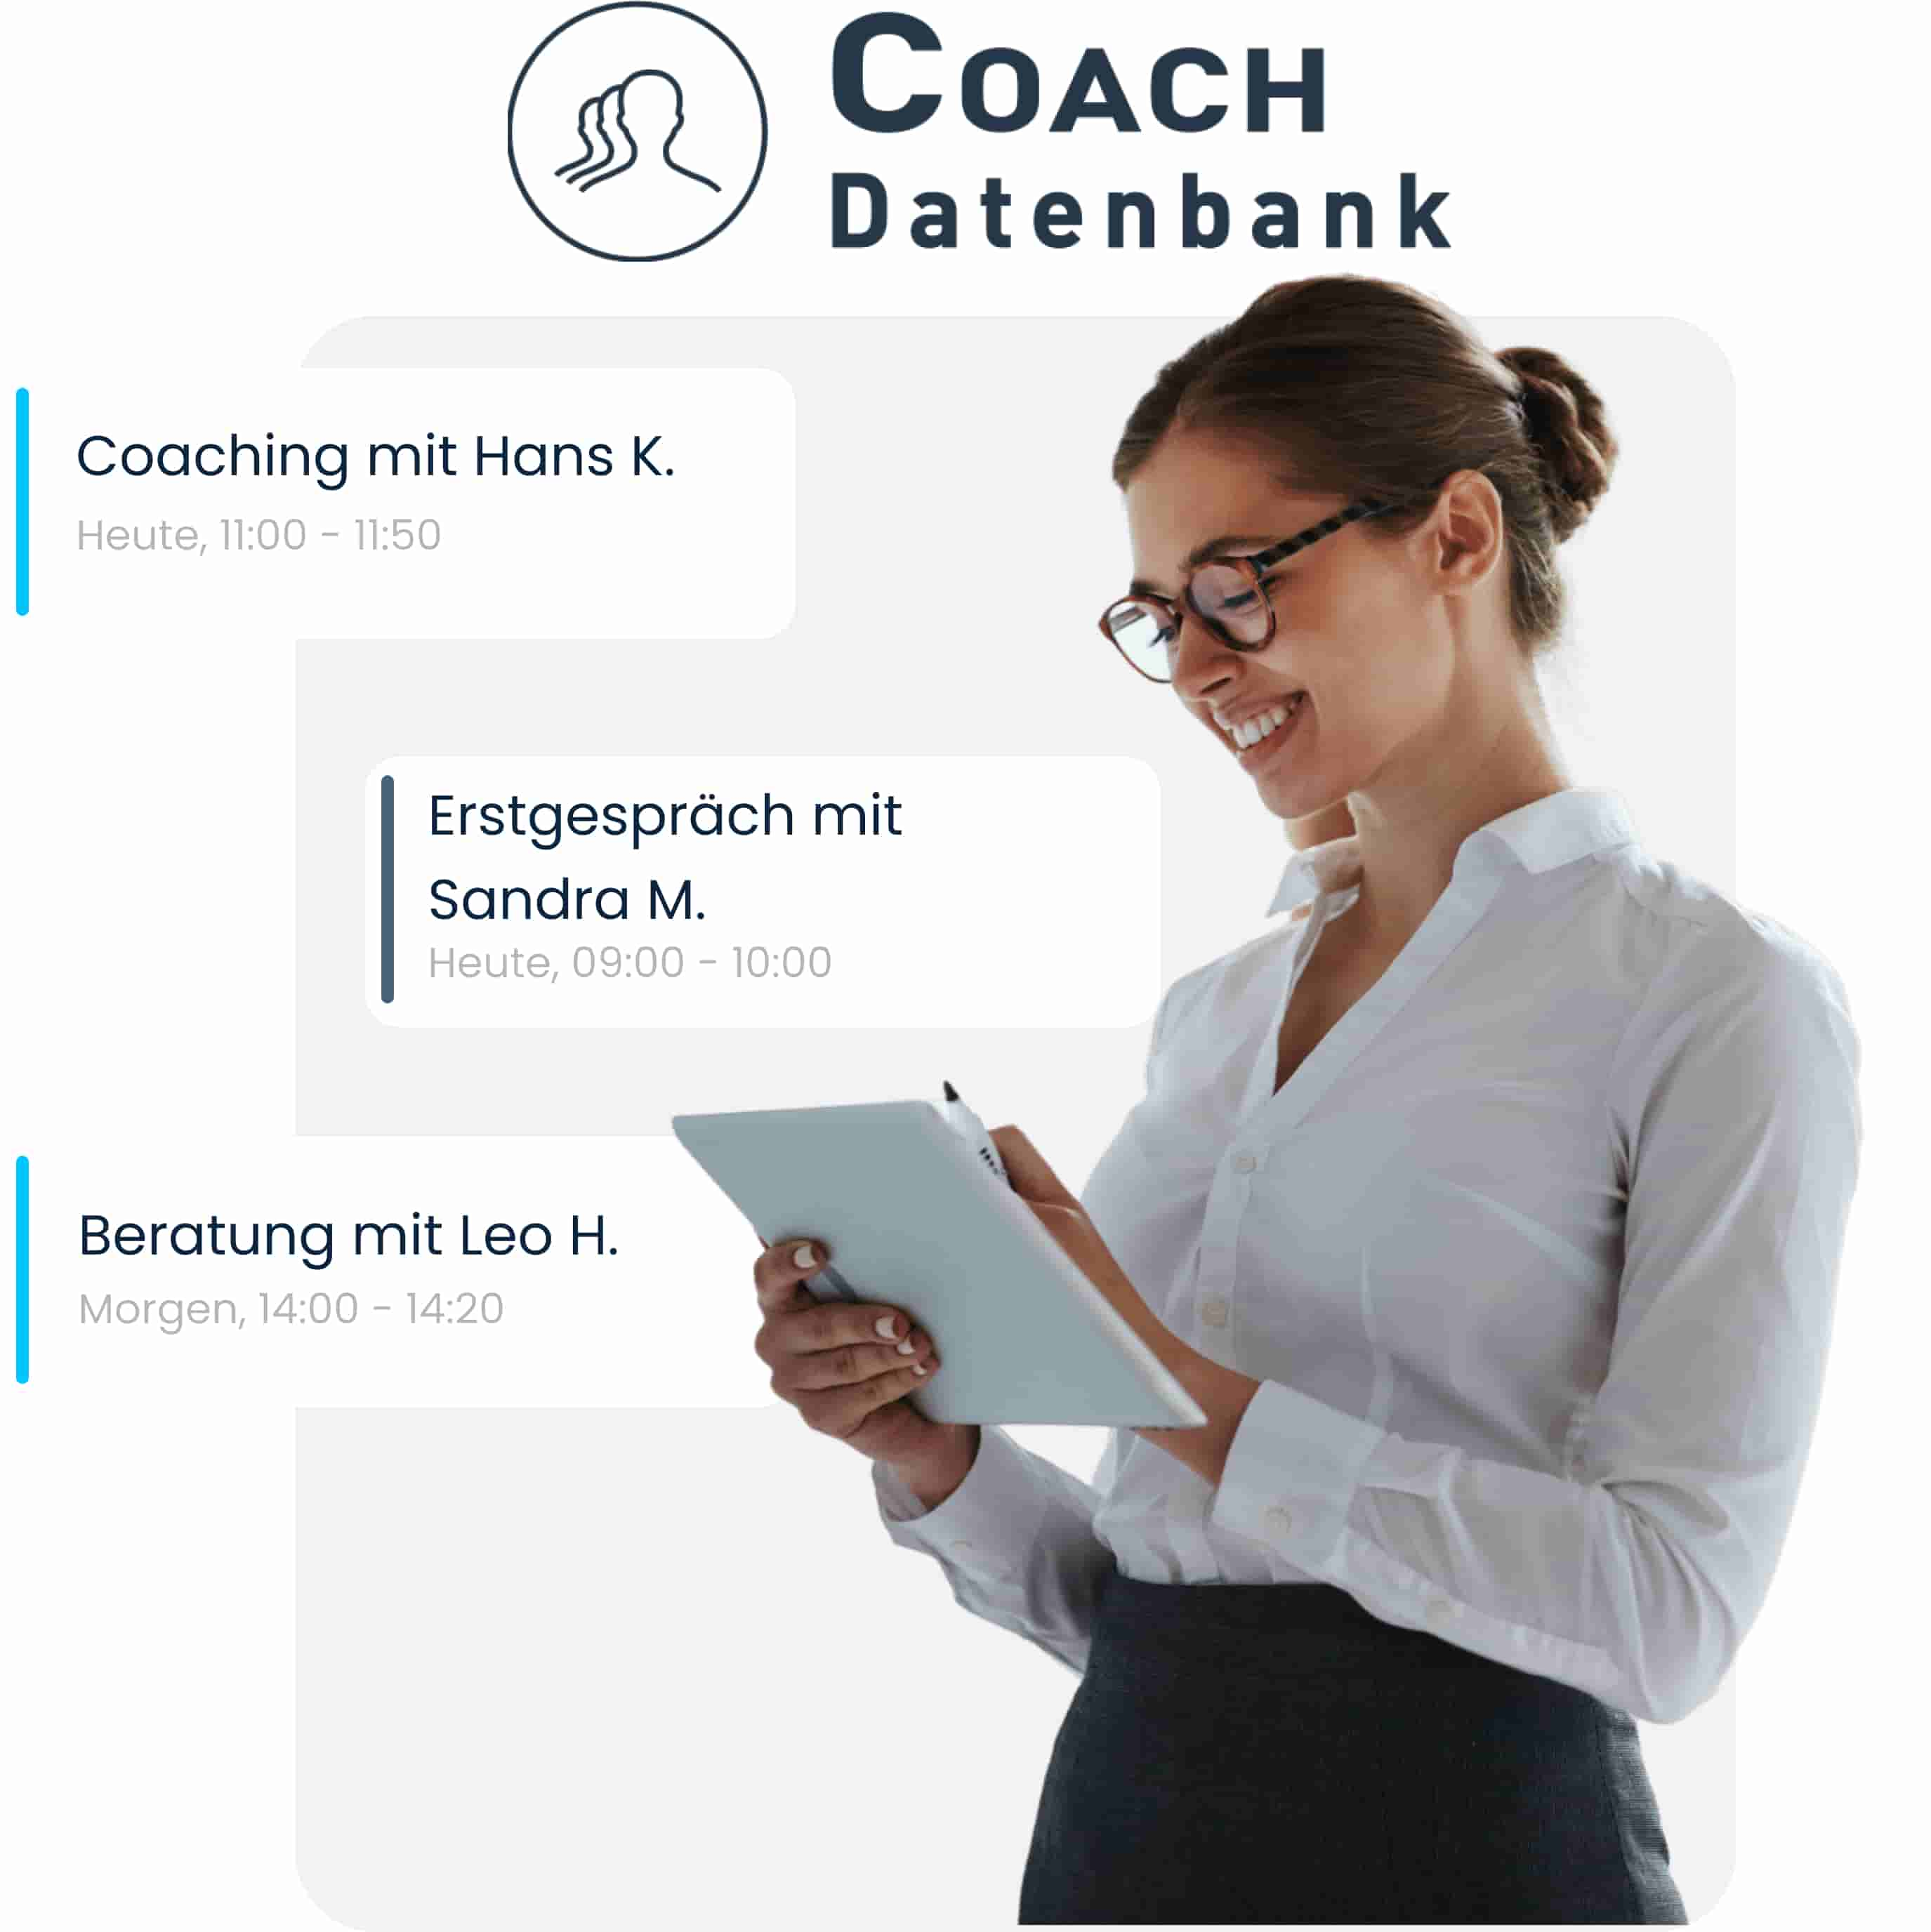 Coach Datenbank Integration von MeetFox